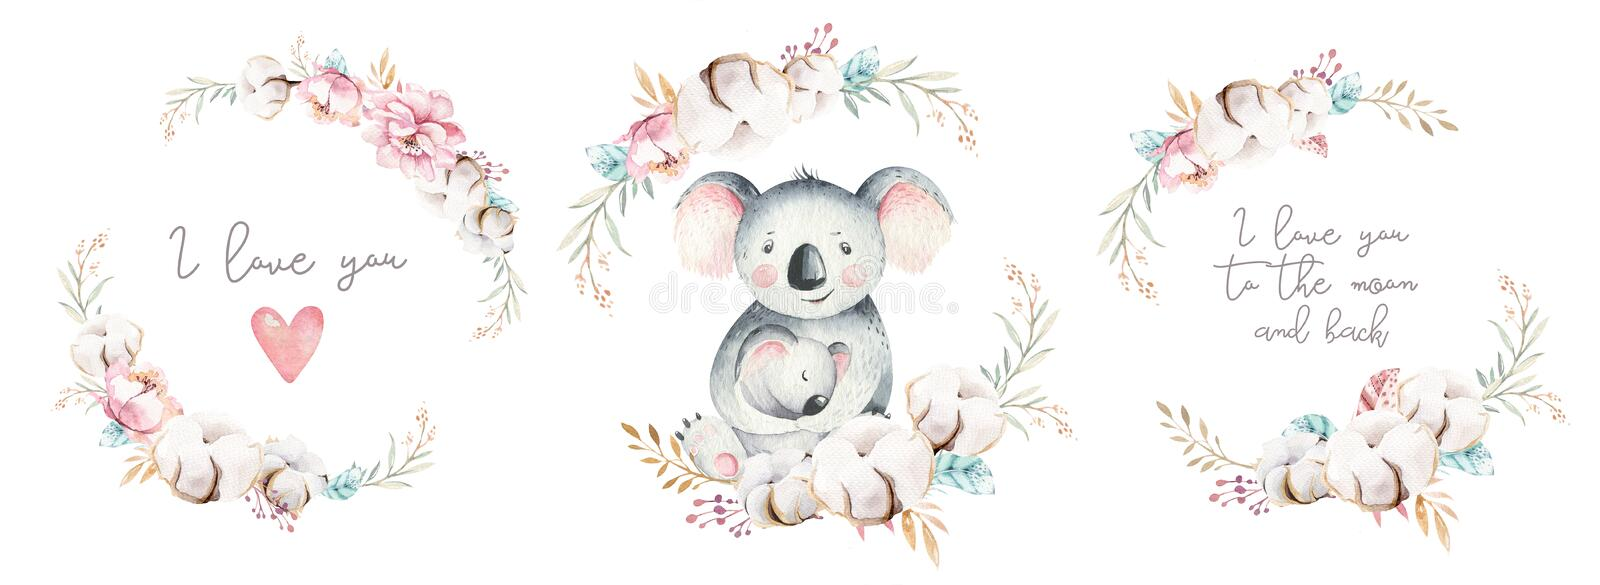 Watercolor cute cartoon little baby and mom koala with floral wreath. Isolated tropical illustration. Mother and baby royalty free illustration